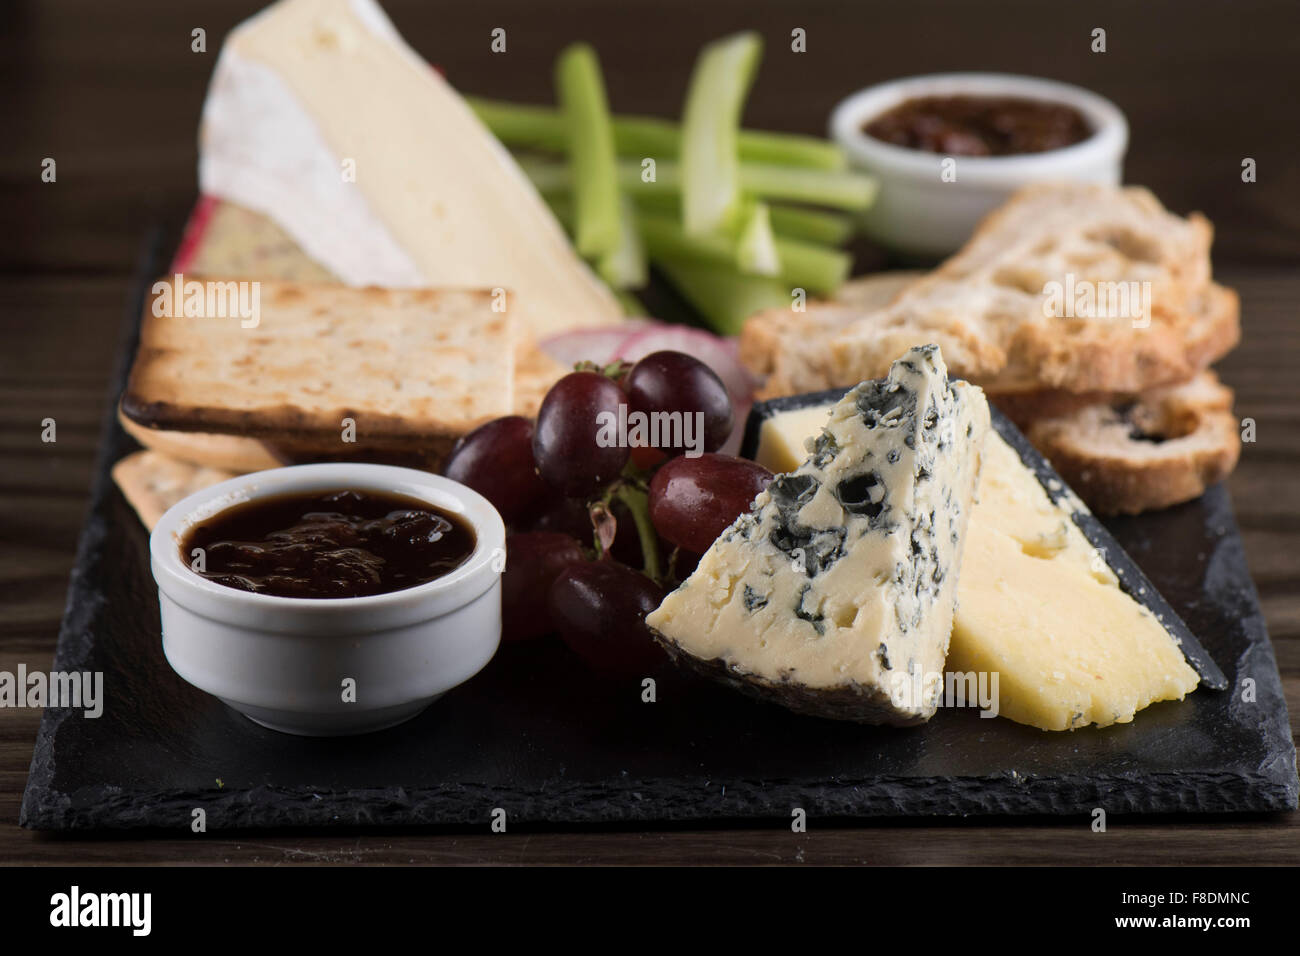 A cheese plate on slate with chutney, cheddar, stilton cheese, crackers, brie, grapes and celery. - Stock Image